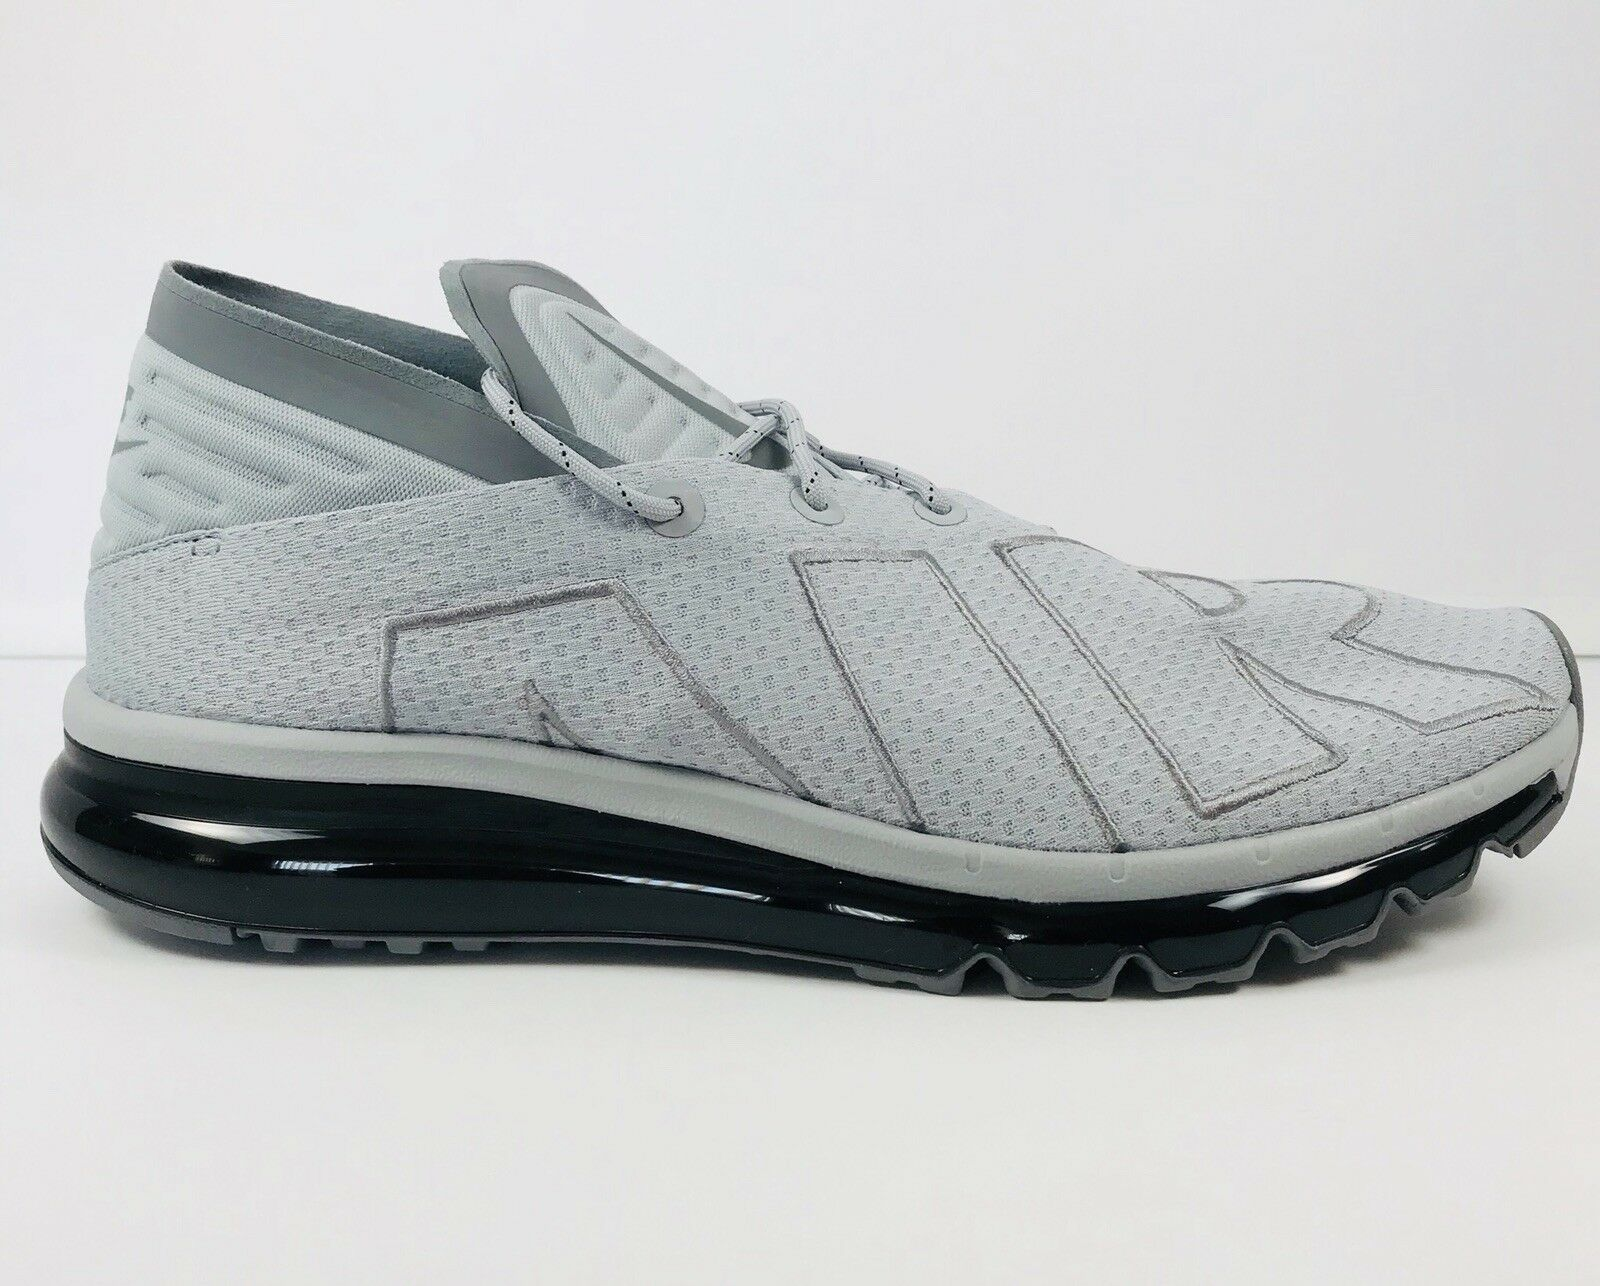 Nike Air Max Flair Men's Running Shoes Wolf Grey Black Size 12 942236-003